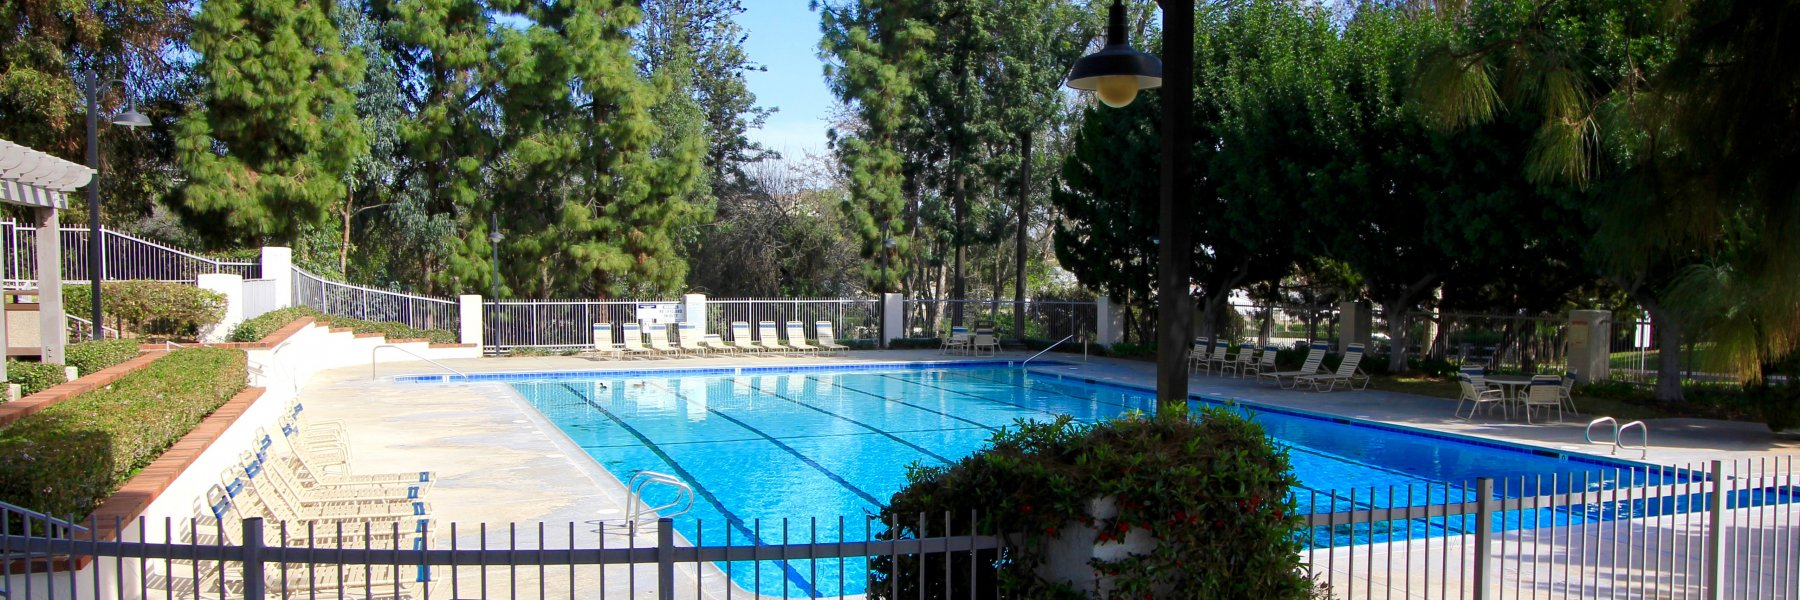 North Hills is a community of homes in Brea California